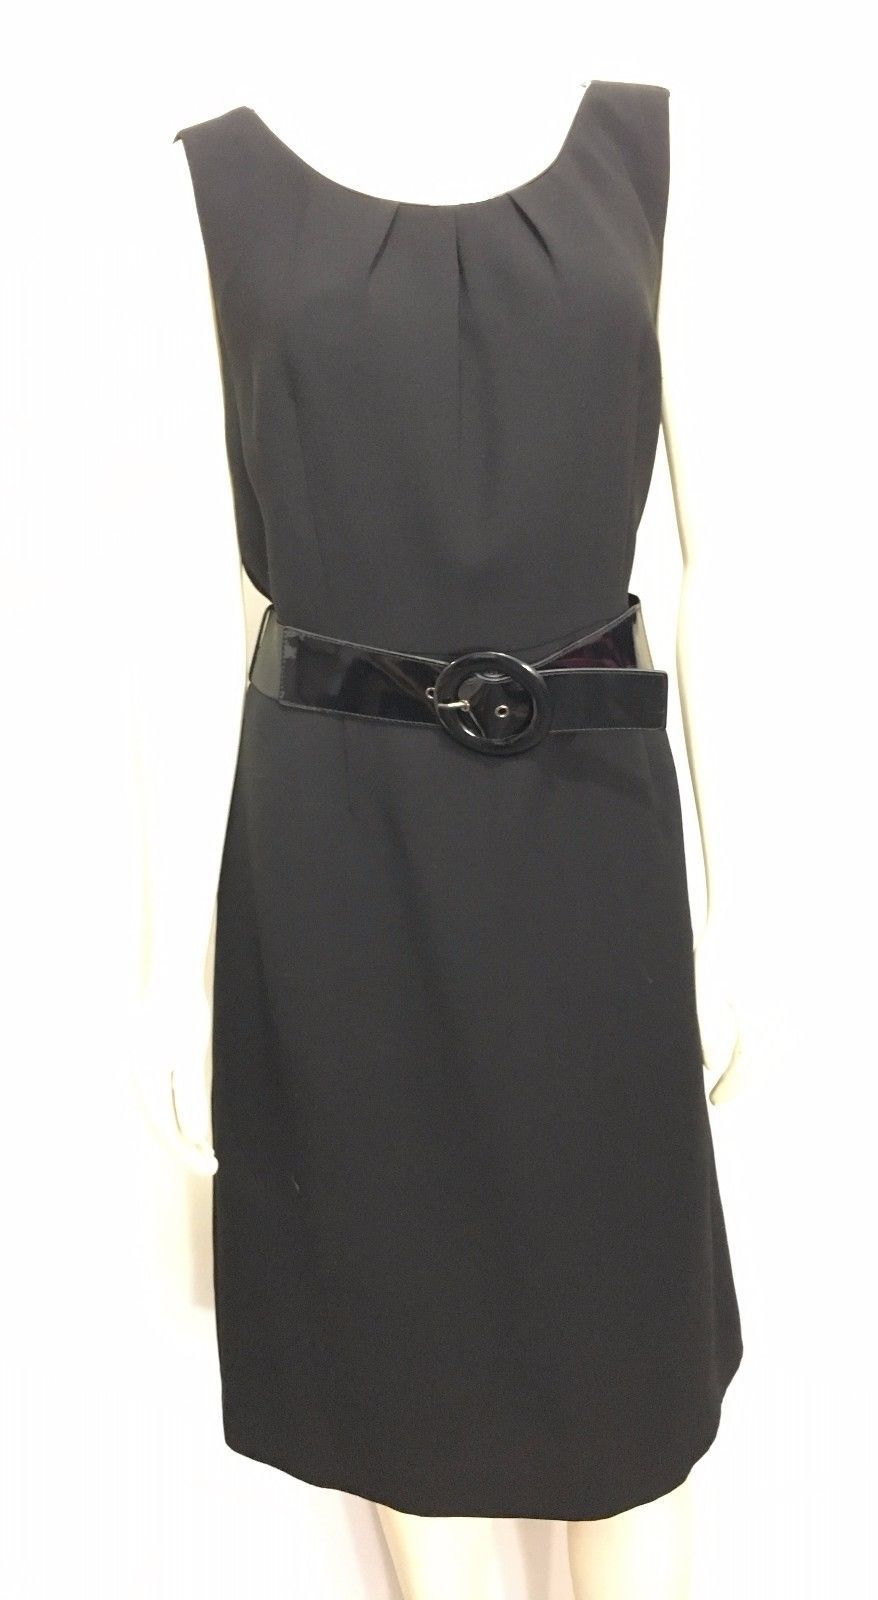 94d8657dfbc91 Tahari Arthur S Levine Womens 12 Black Sleeveless Belted Knee-Length Dress  LBD - $47.53